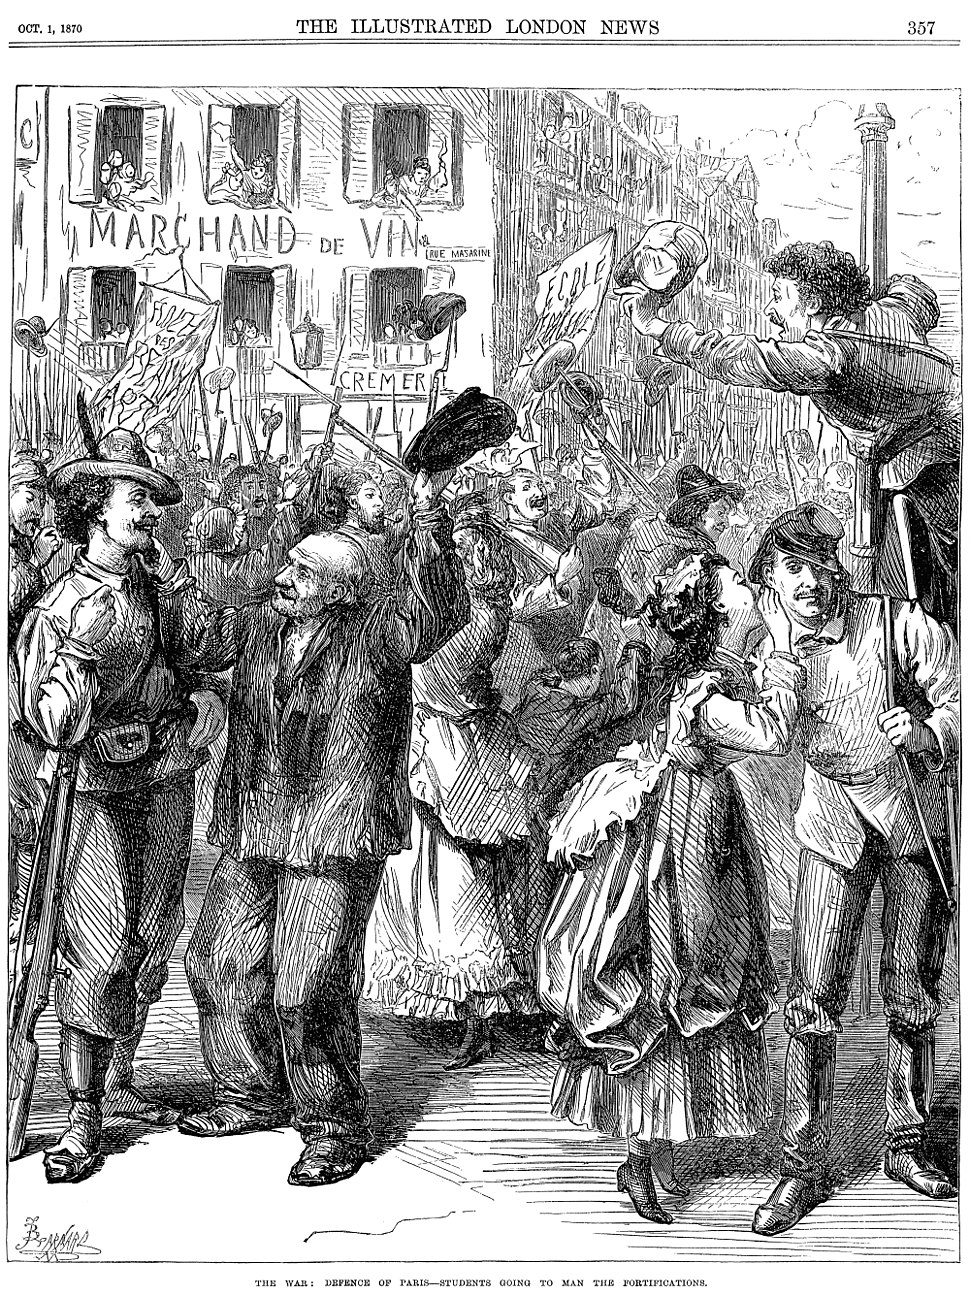 Franco-Prussian War - Students Going to Man the Barricades - Illustrated London News Oct 1 1870